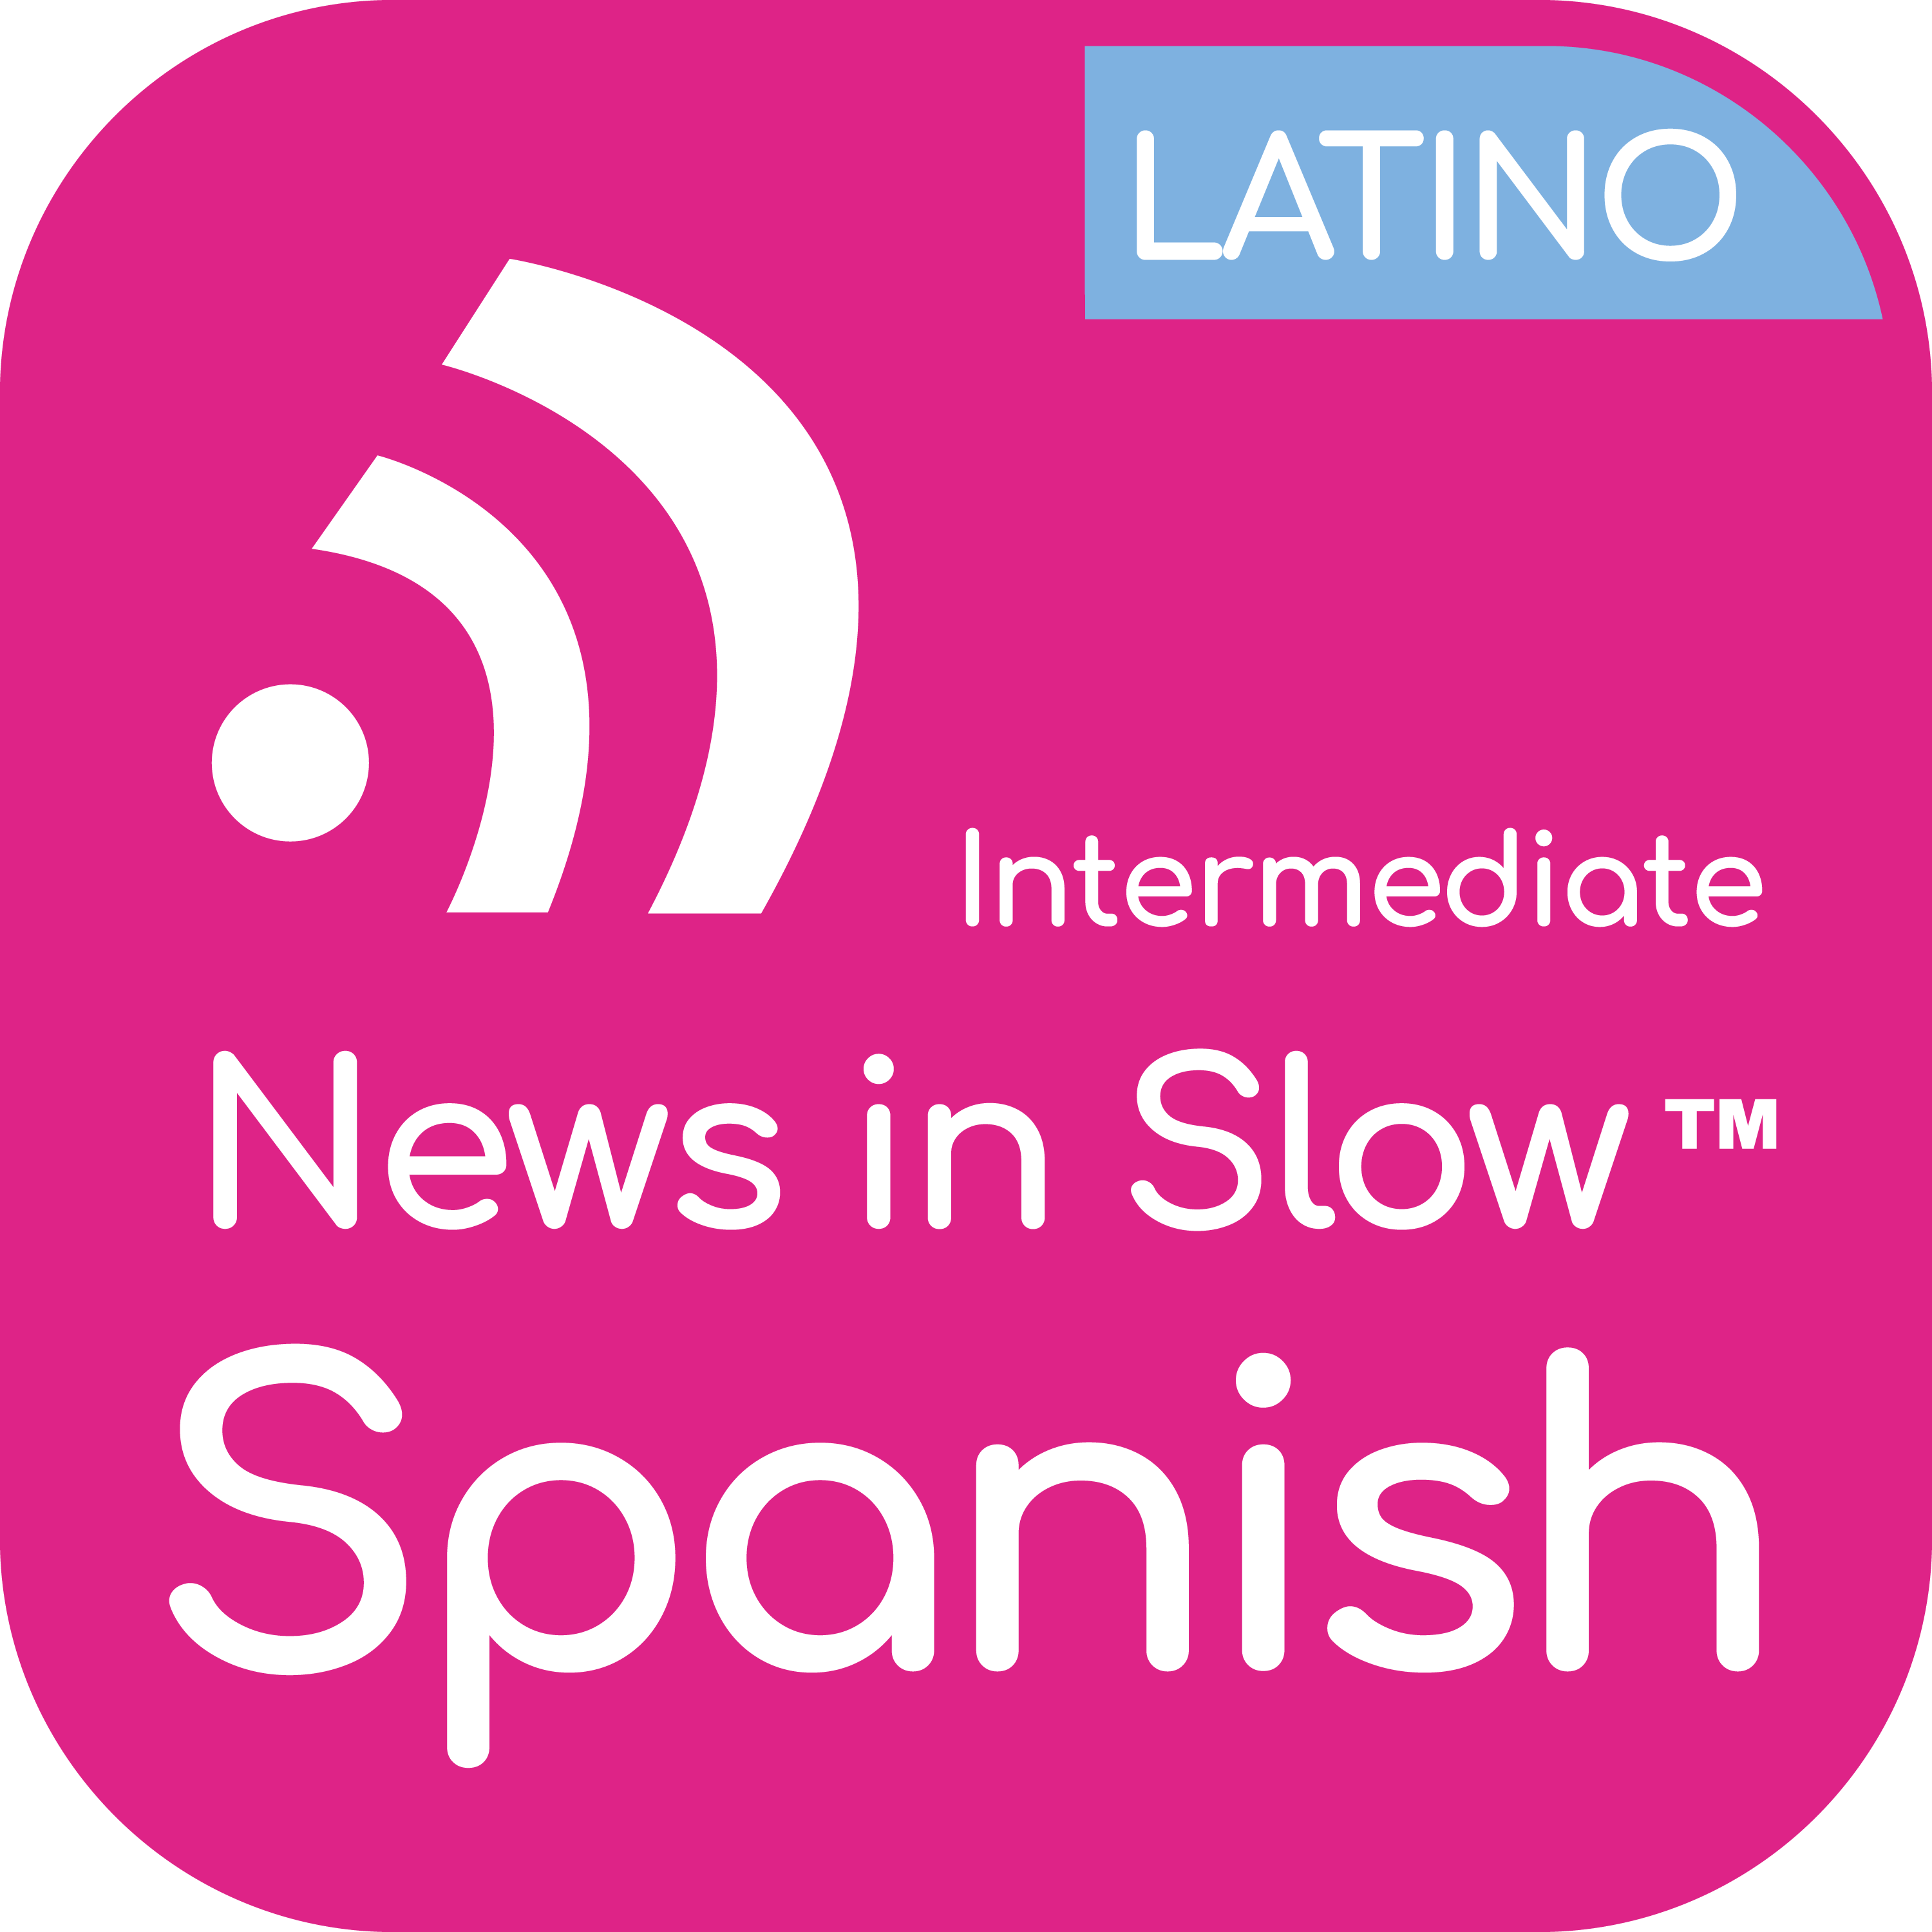 News In Slow Spanish Latino #395 - Spanish Grammar, News, and Expressions